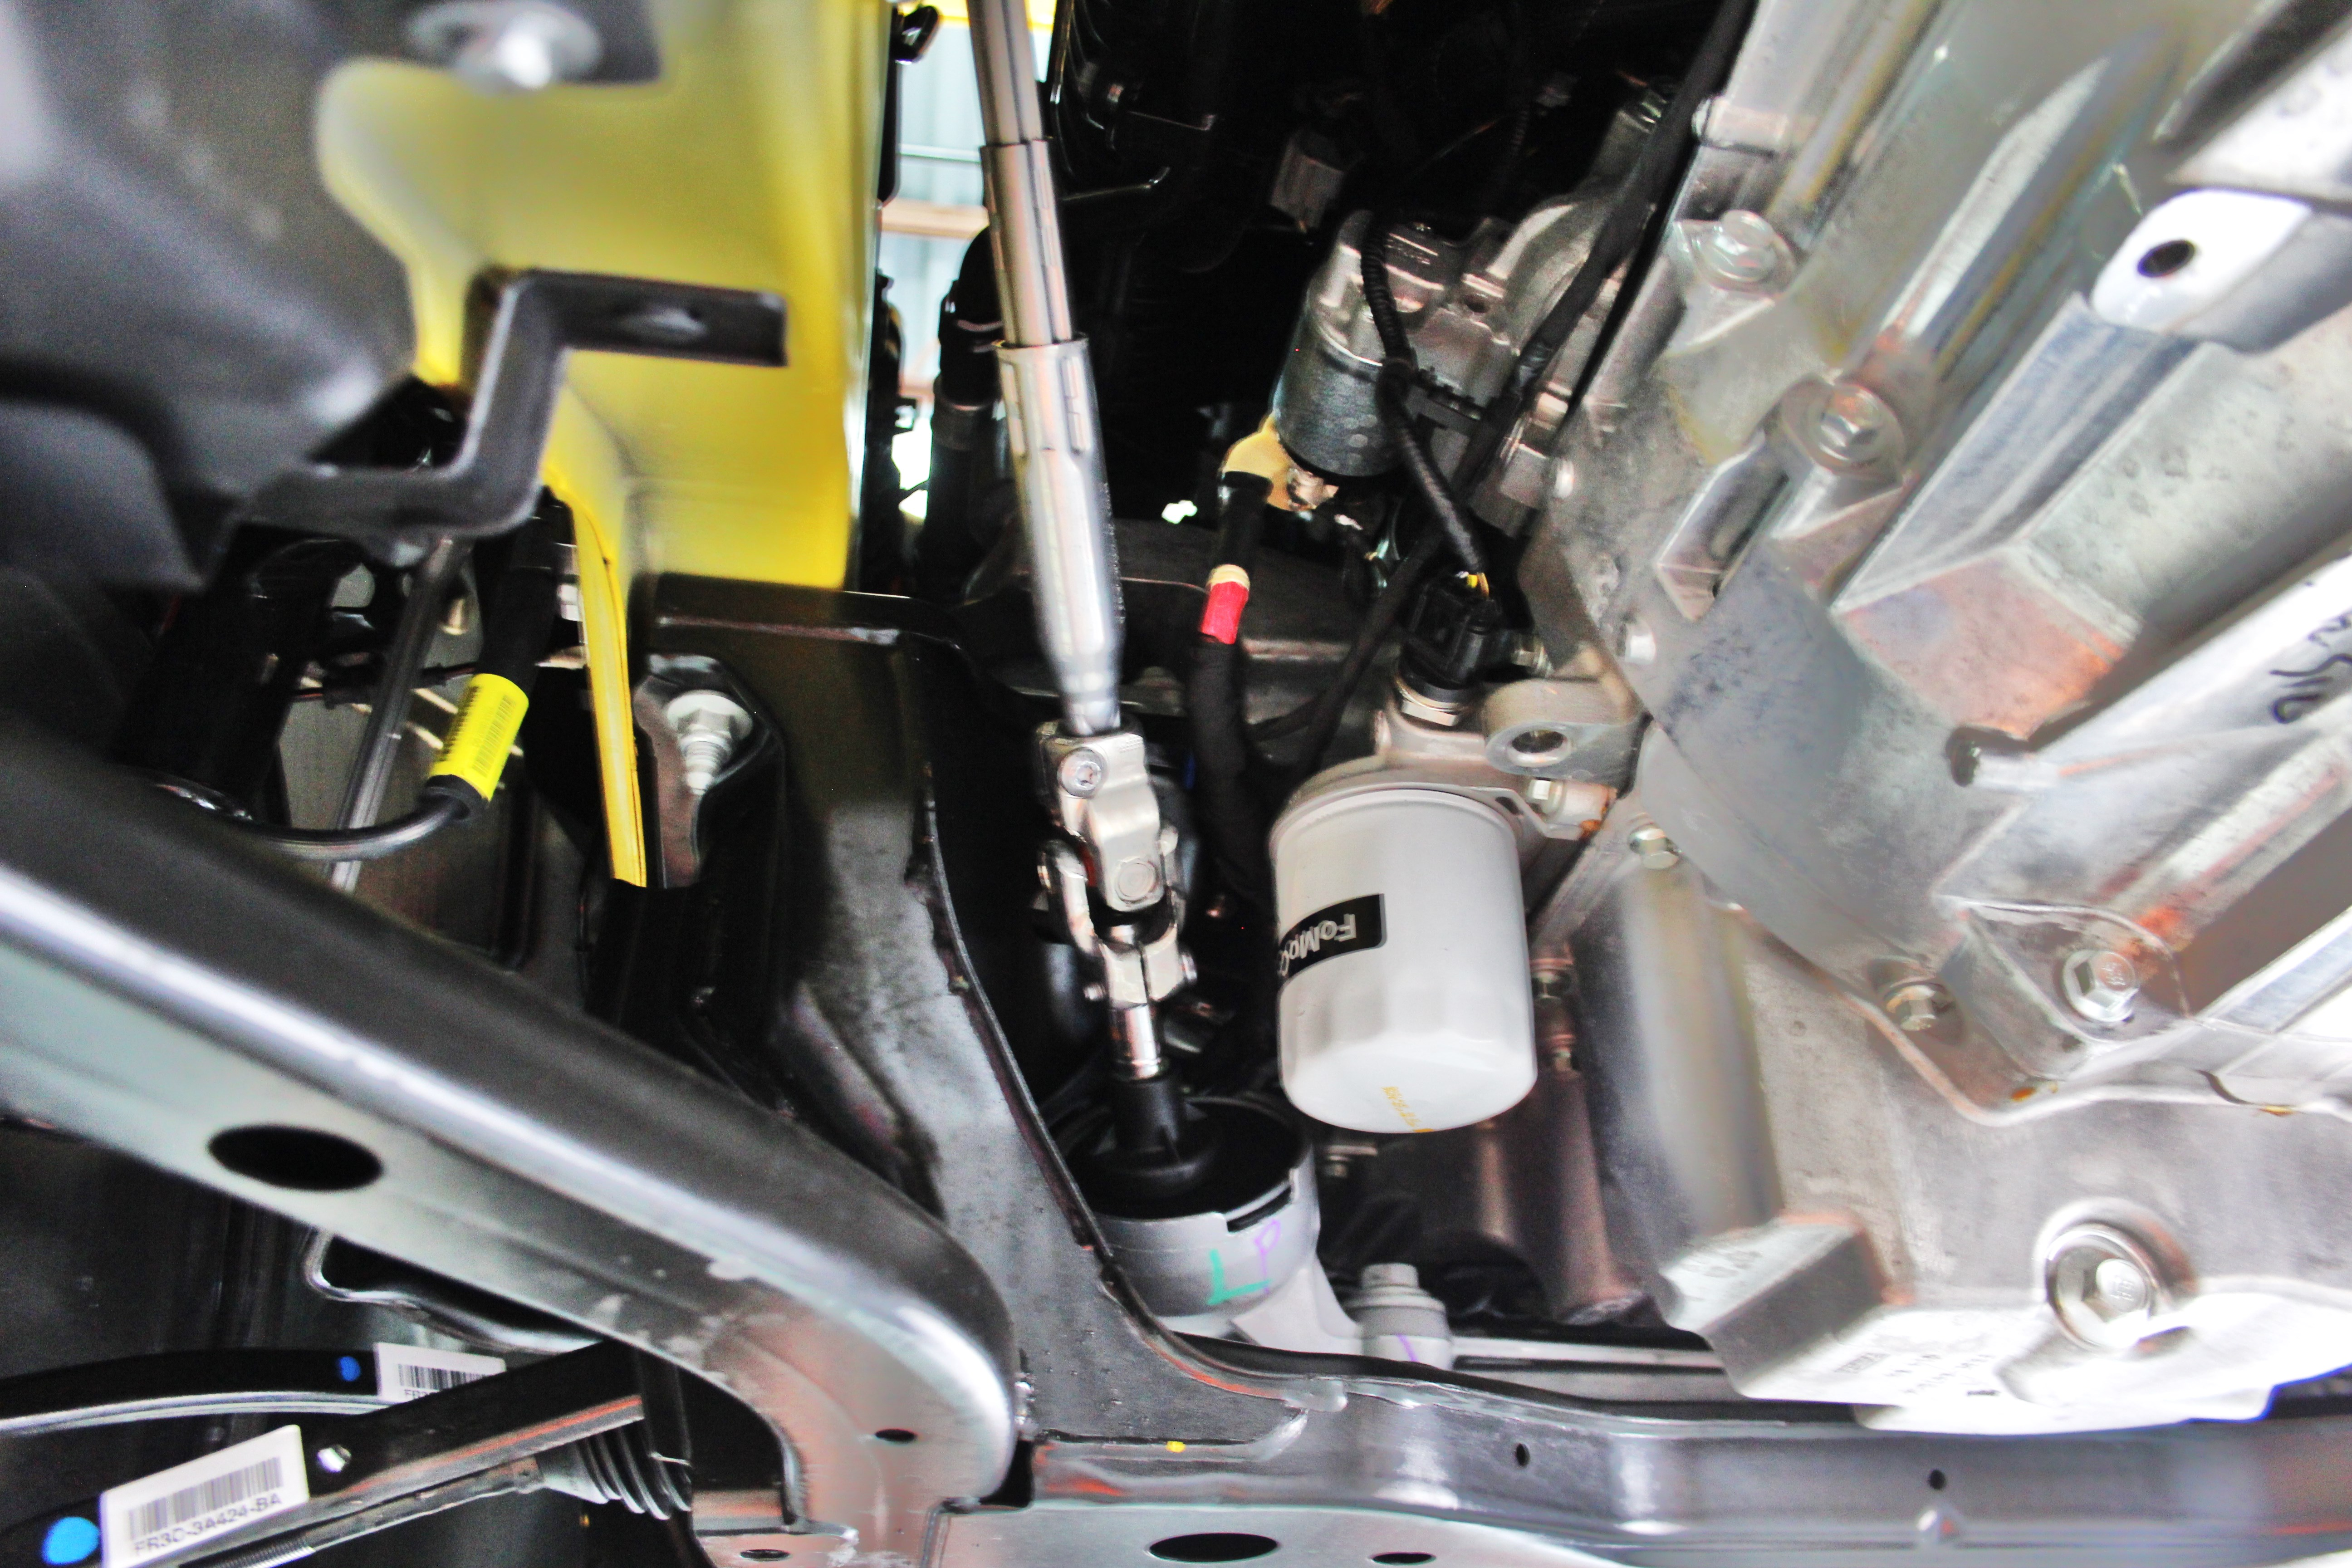 2015 ford mustang ecoboost direct fit oil cooler kit part 1 project introduction and first prototype design